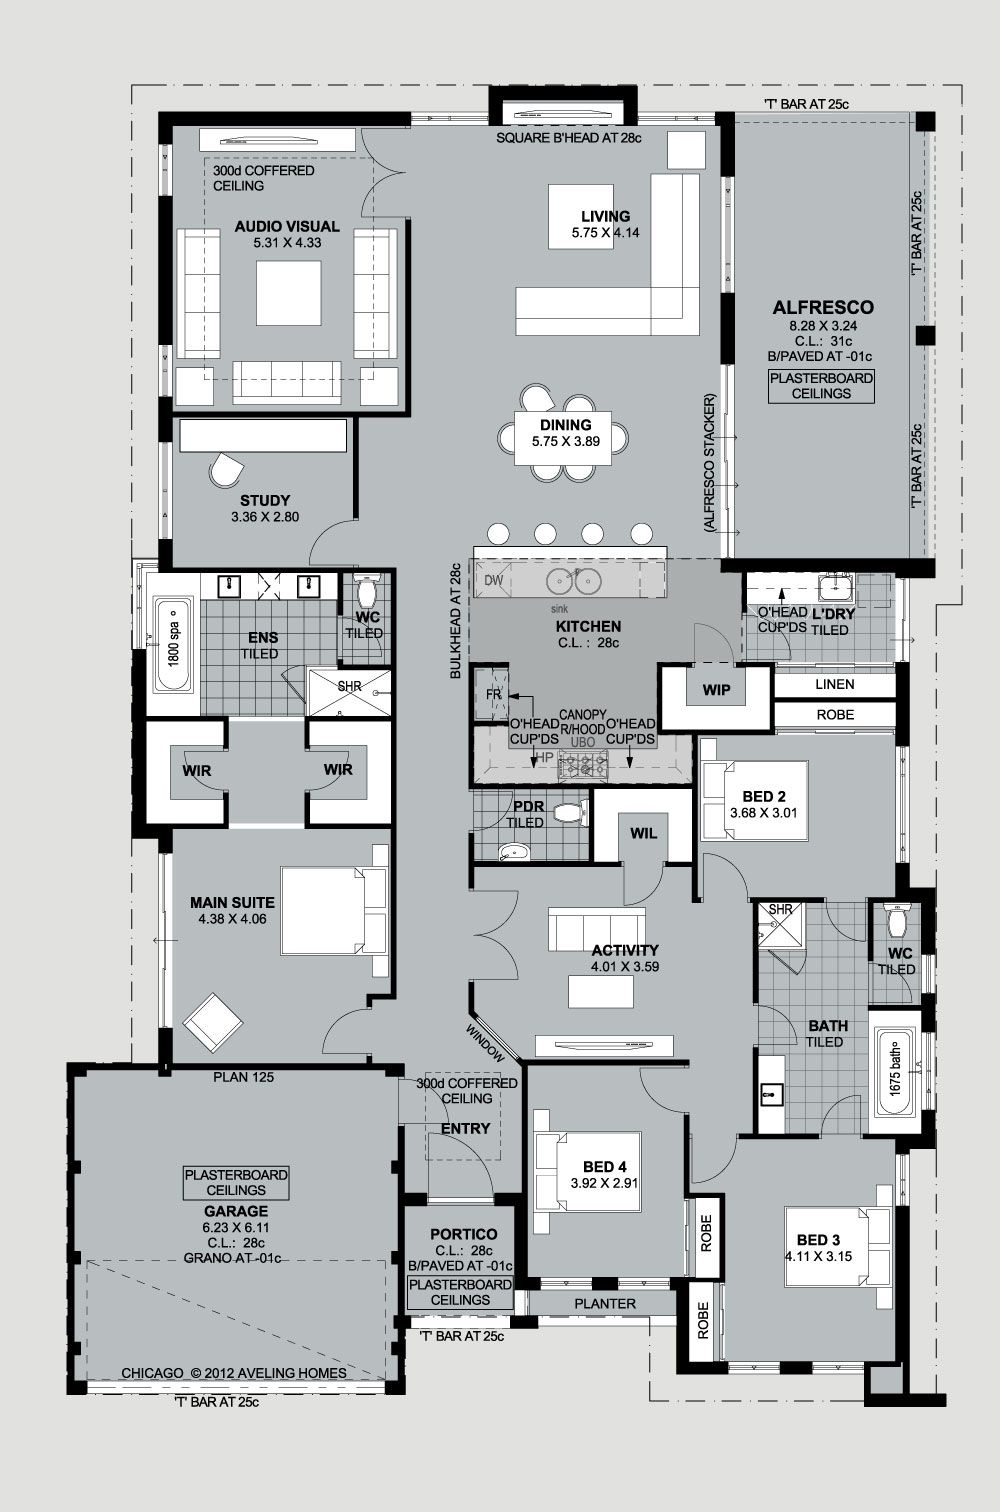 Home Builders Perth Luxury House Plans Home Design Floor Plans House Plans